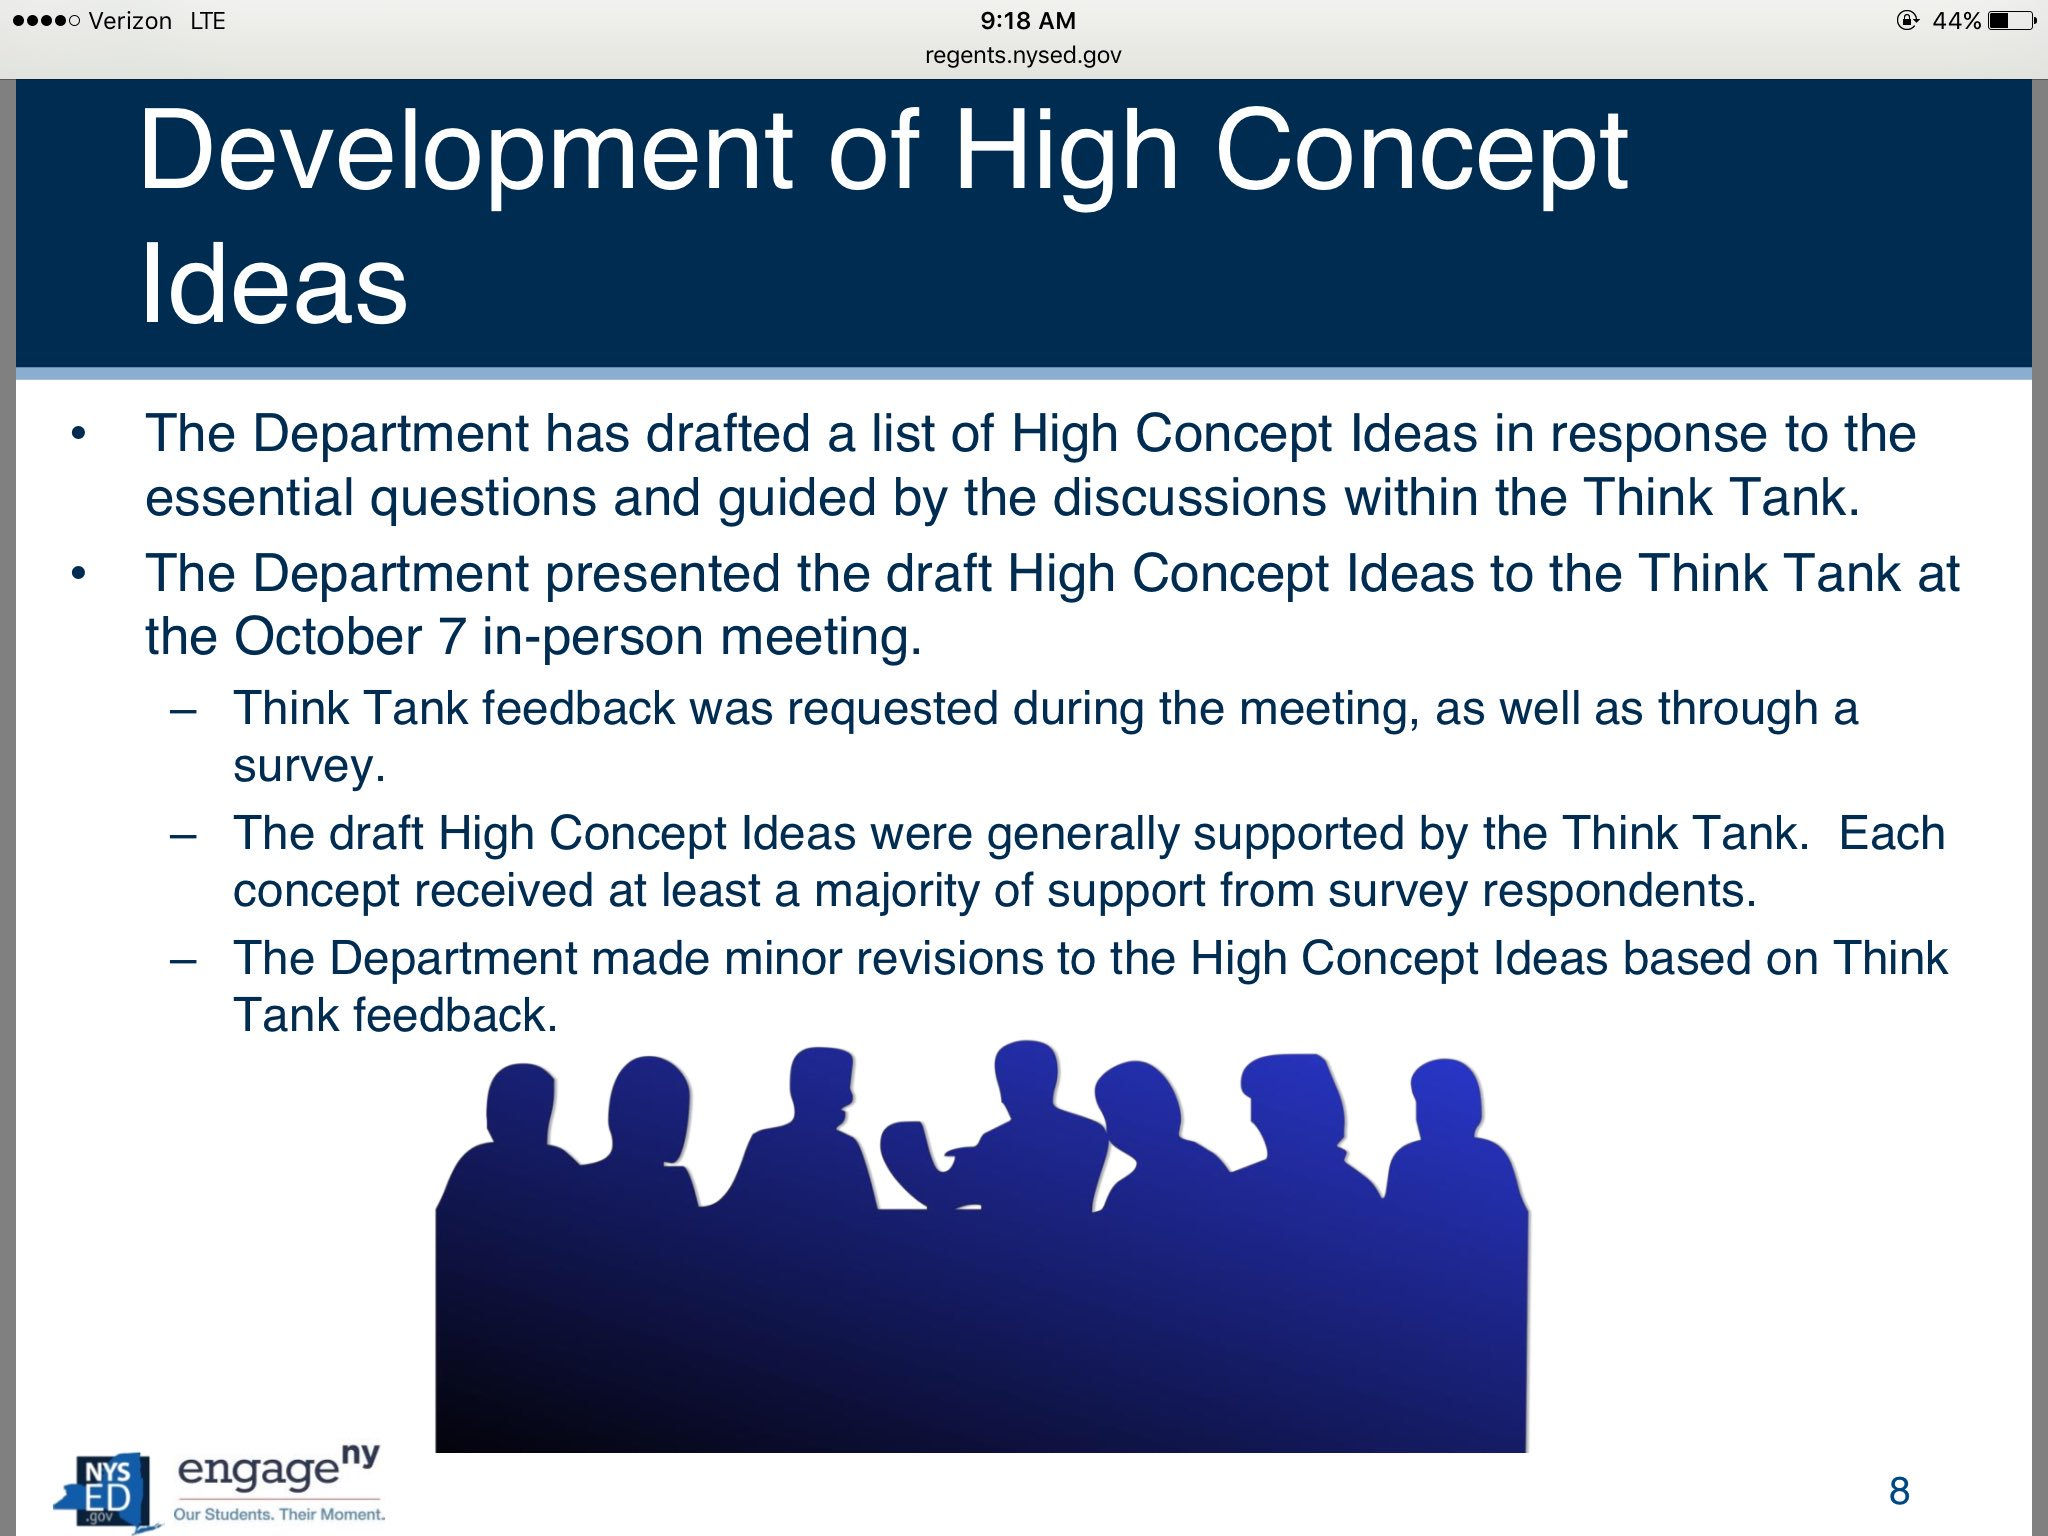 High concept ideas can be found here - https://t.co/i8RifFvrja @NYSEDNews @NYSPTA https://t.co/qCerGN6P76